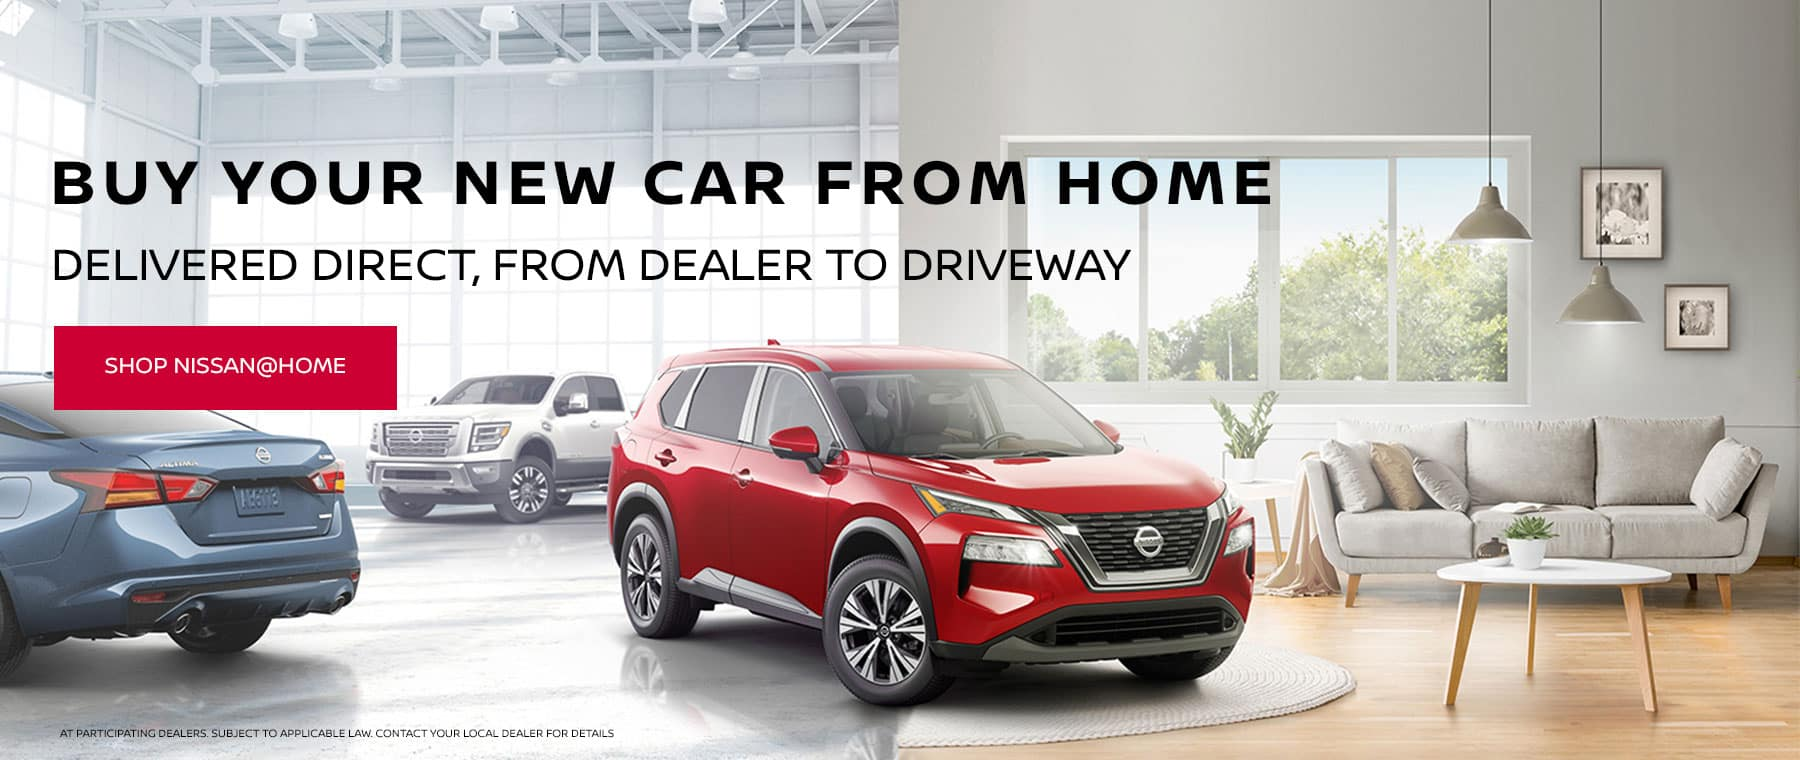 Buy Your New Car From Home, Delivered Direct, from dealer to driveway